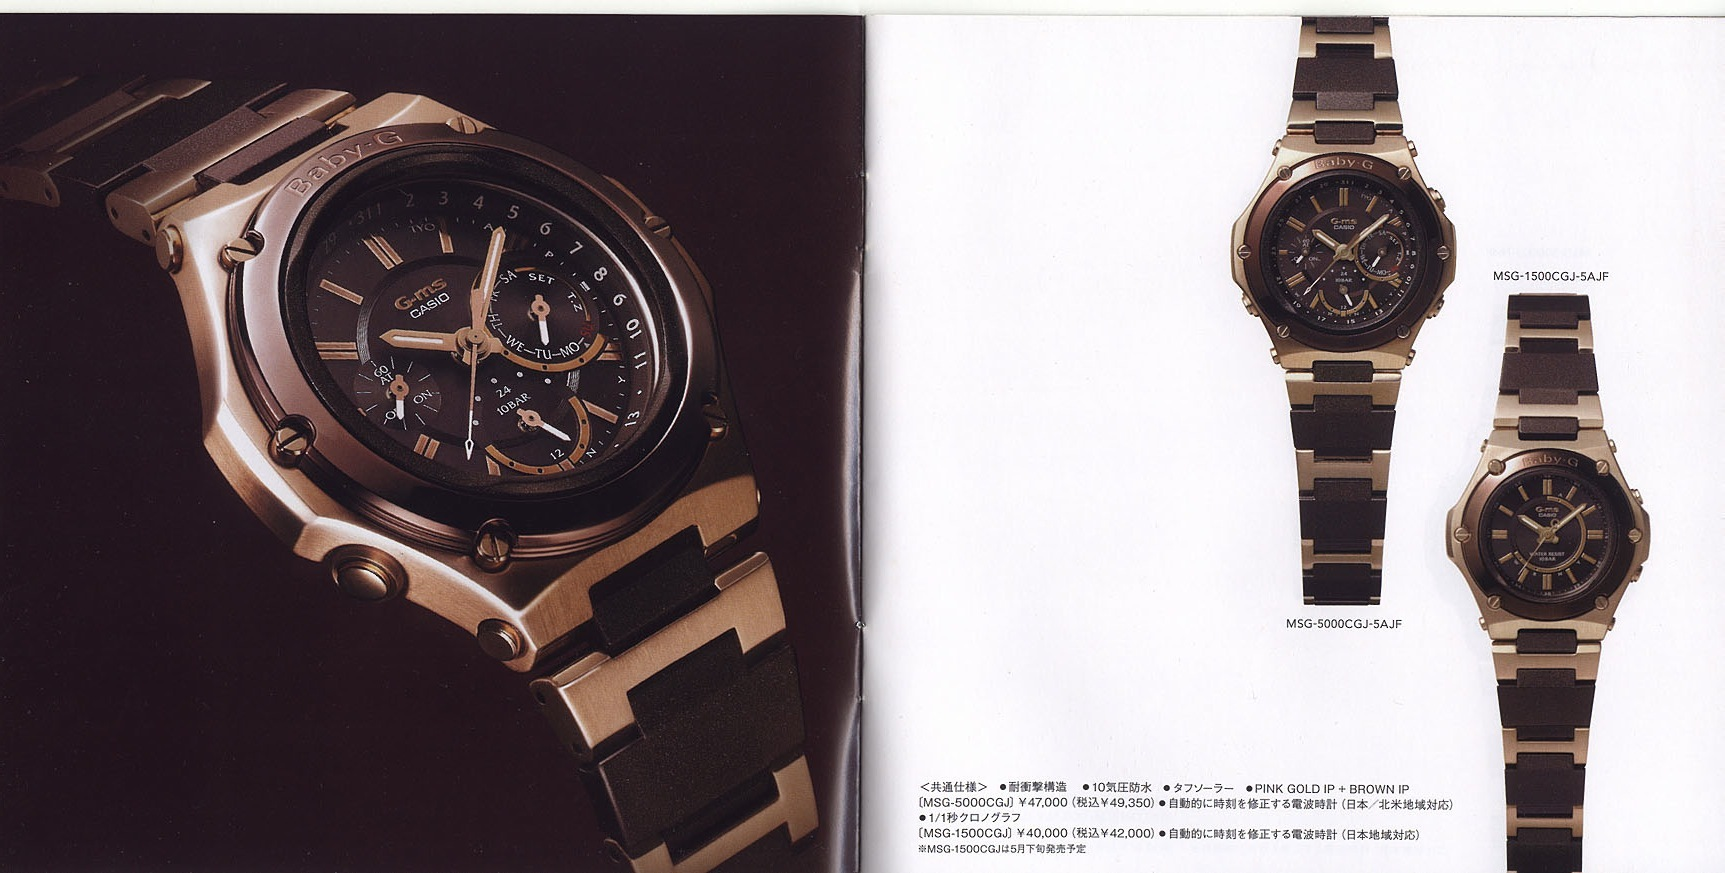 Baby-G-Casio-watches-2009-Catalog-Page-3.jpg